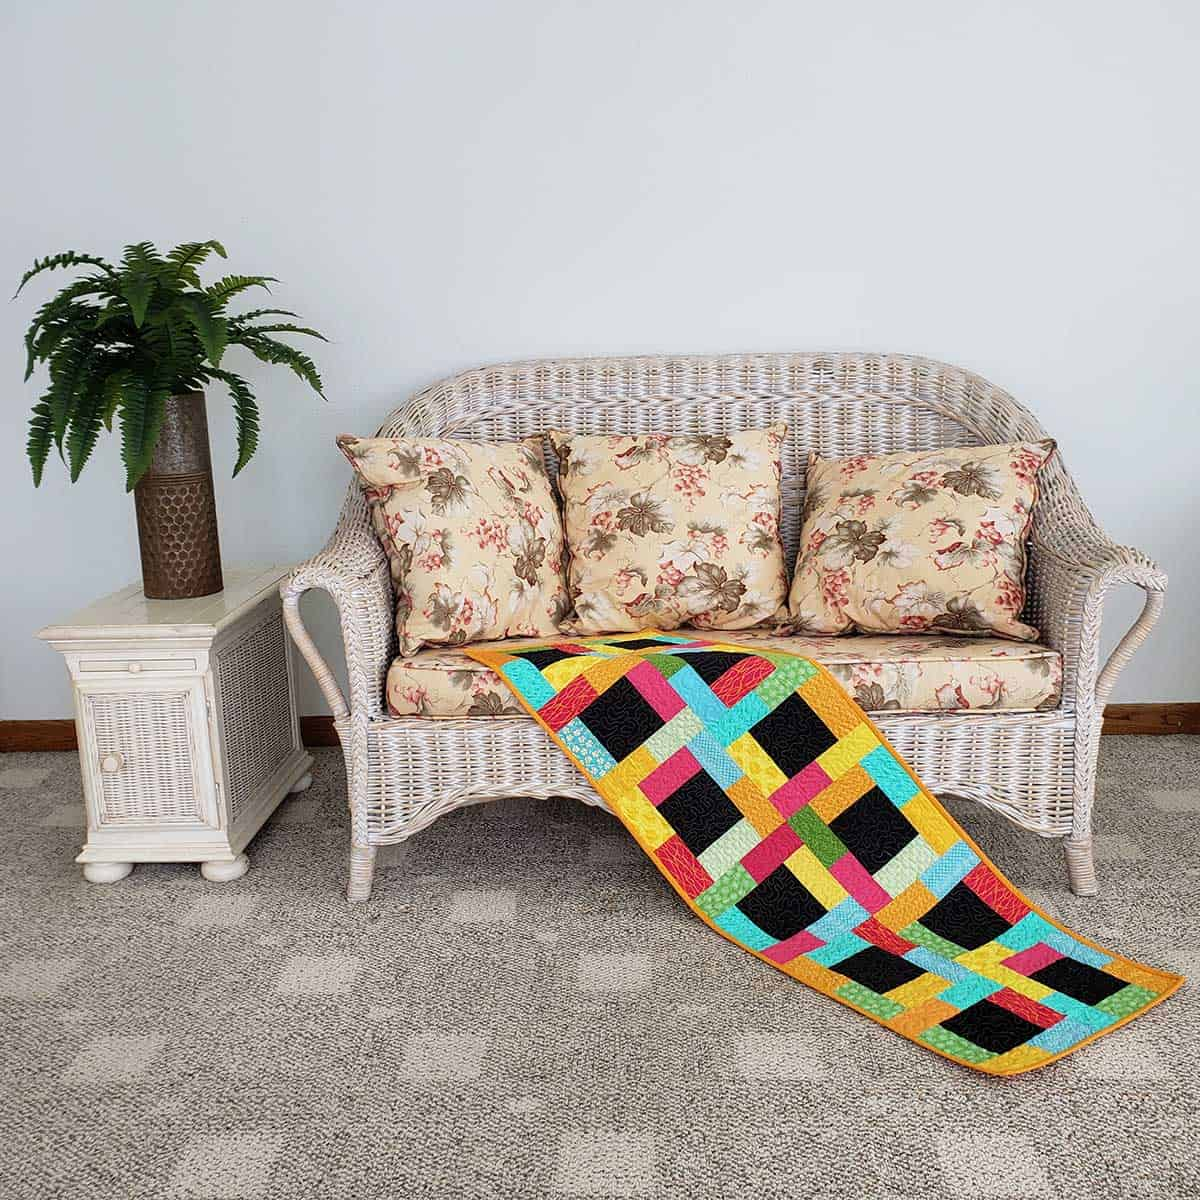 Midnight table runner on chaise lounge